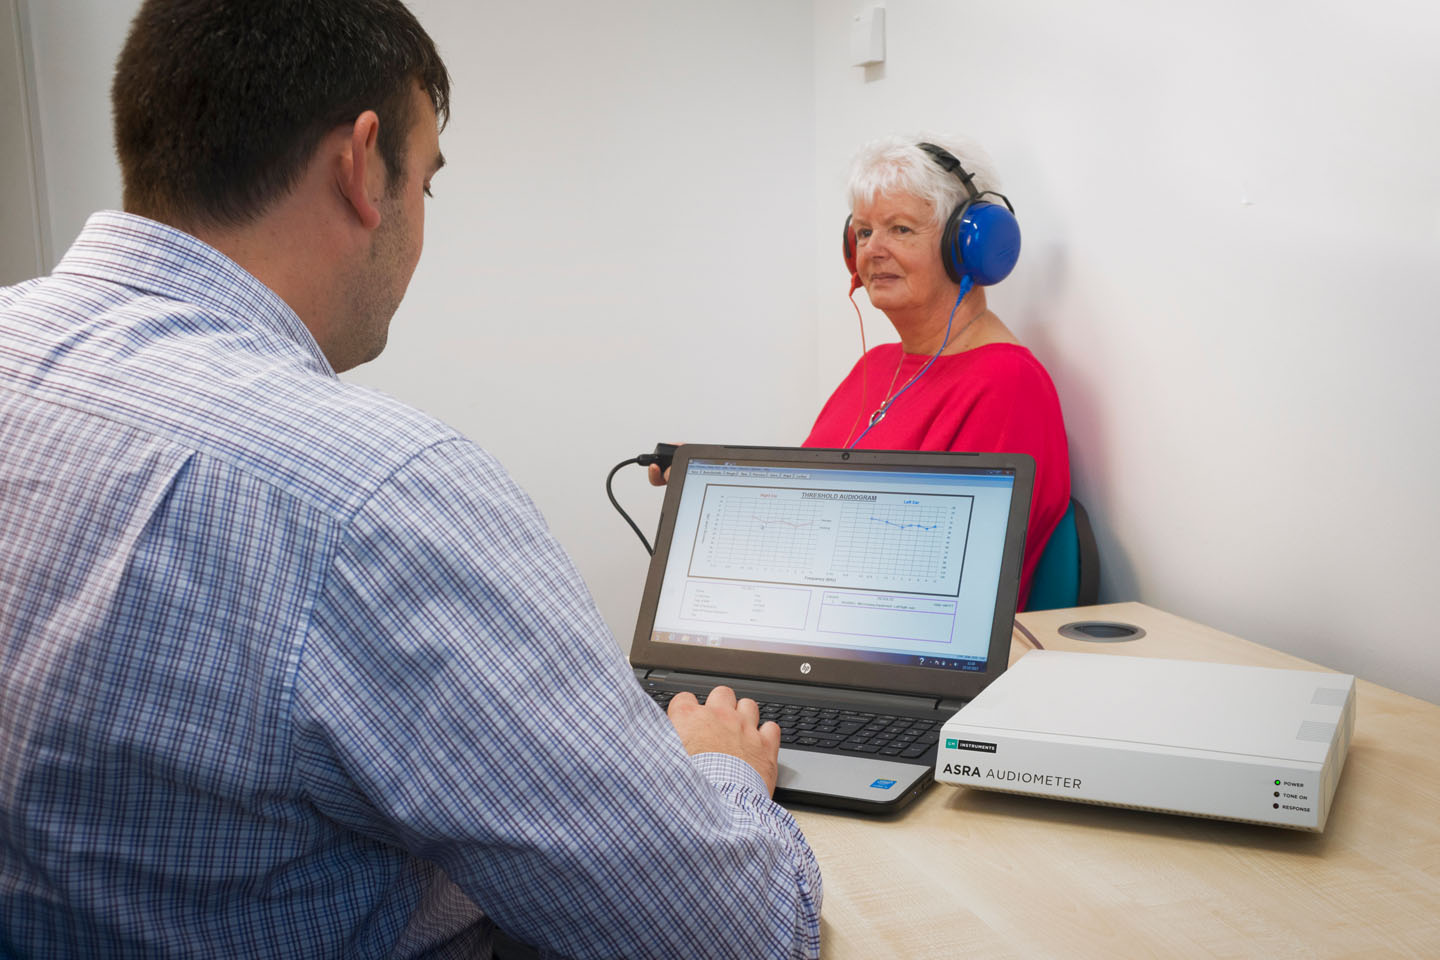 Using the Asra Classic Audiometer